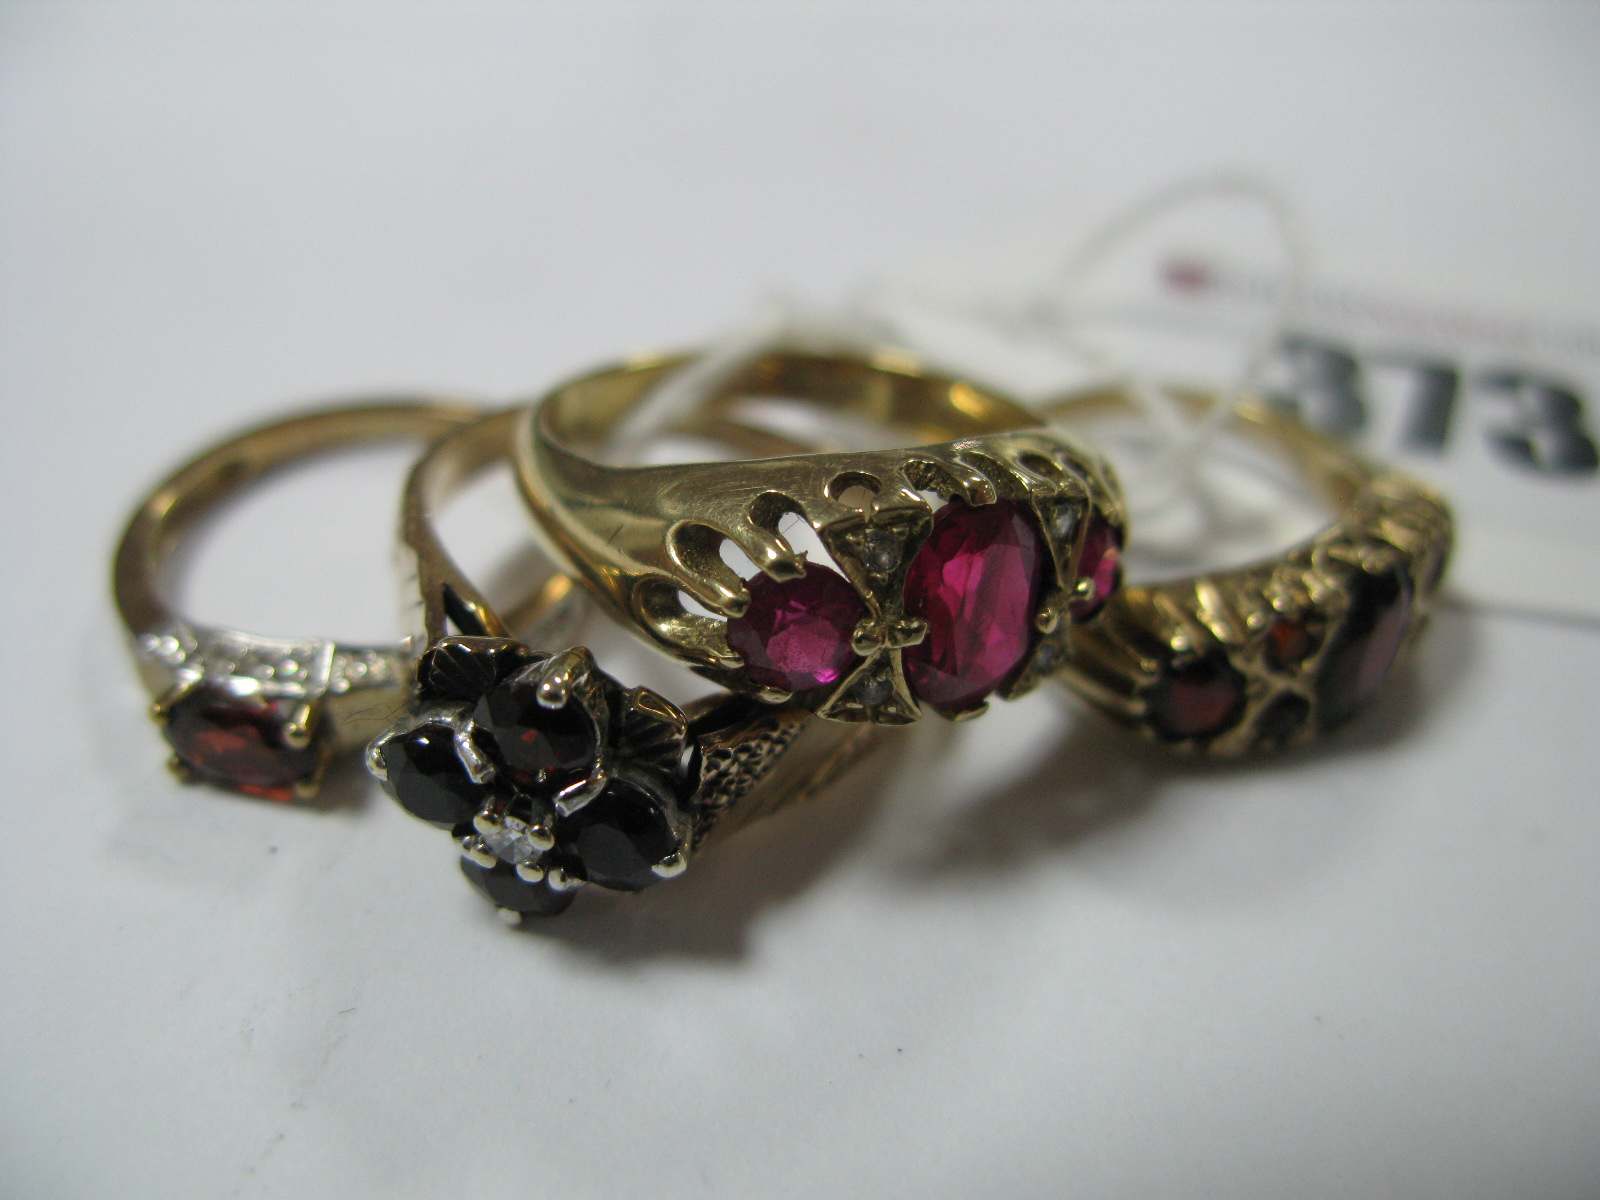 Lot 373 - A 9ct Gold Cluster Style Dress Ring, claw set highlights, between wide textured shoulders, a